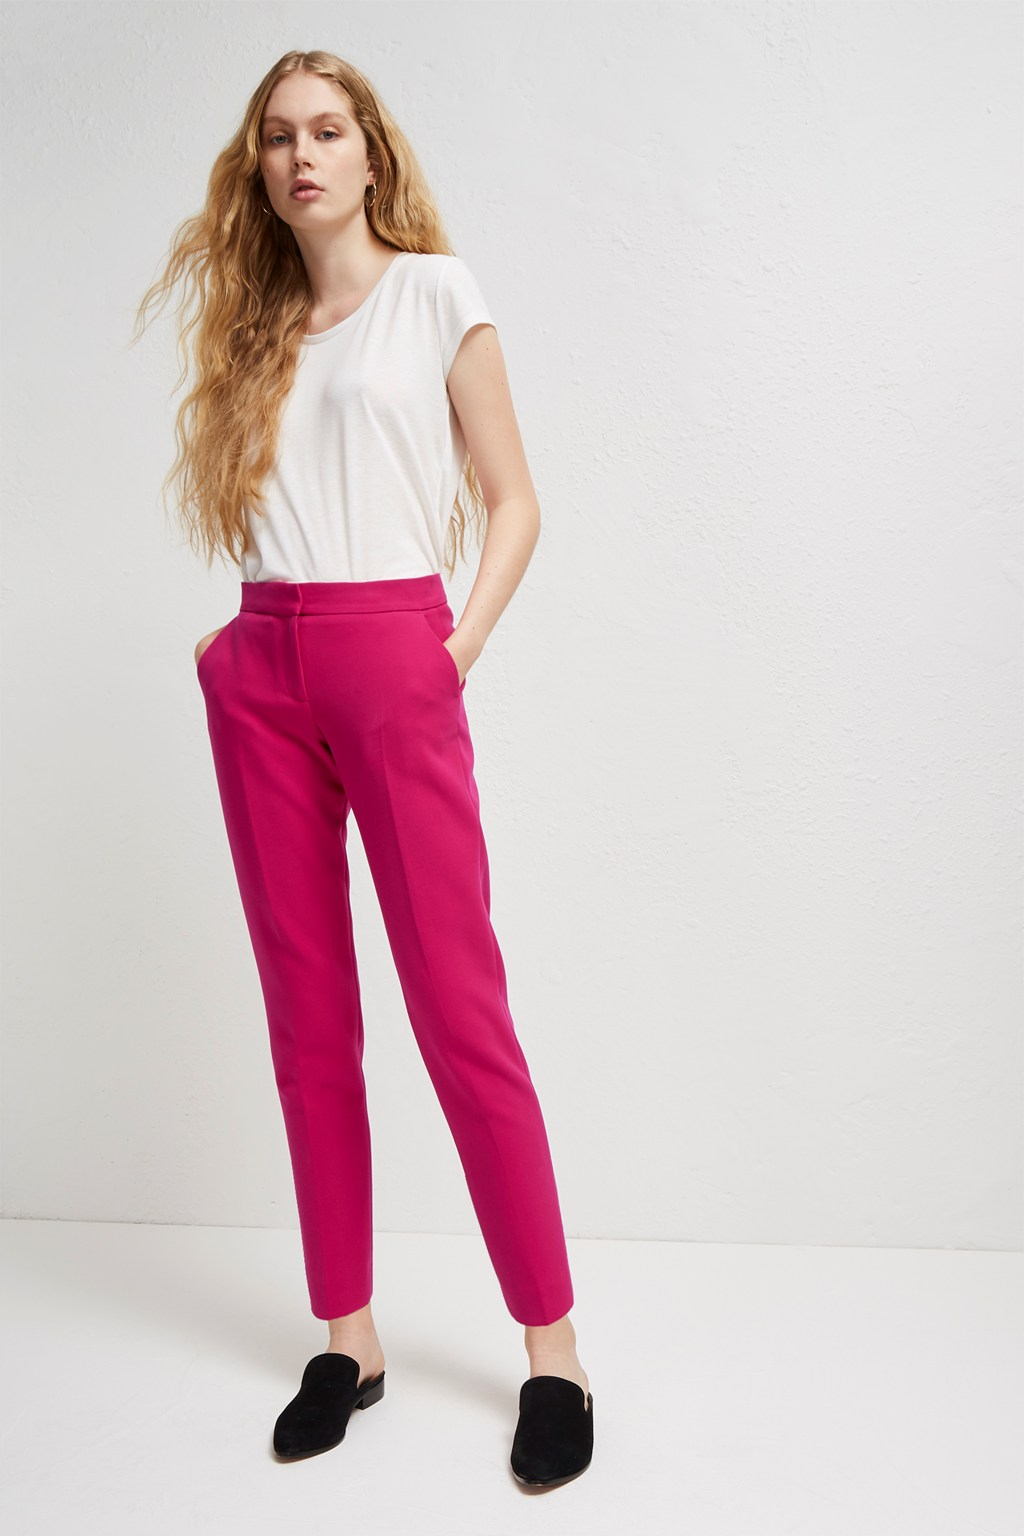 30a0af92d6f64 ... Ladies Business Suits Formal Female Trouser Office Suits. Sundae Pink Suit  Trousers. loading images. Sundae Pink Suit Trousers. loading images.